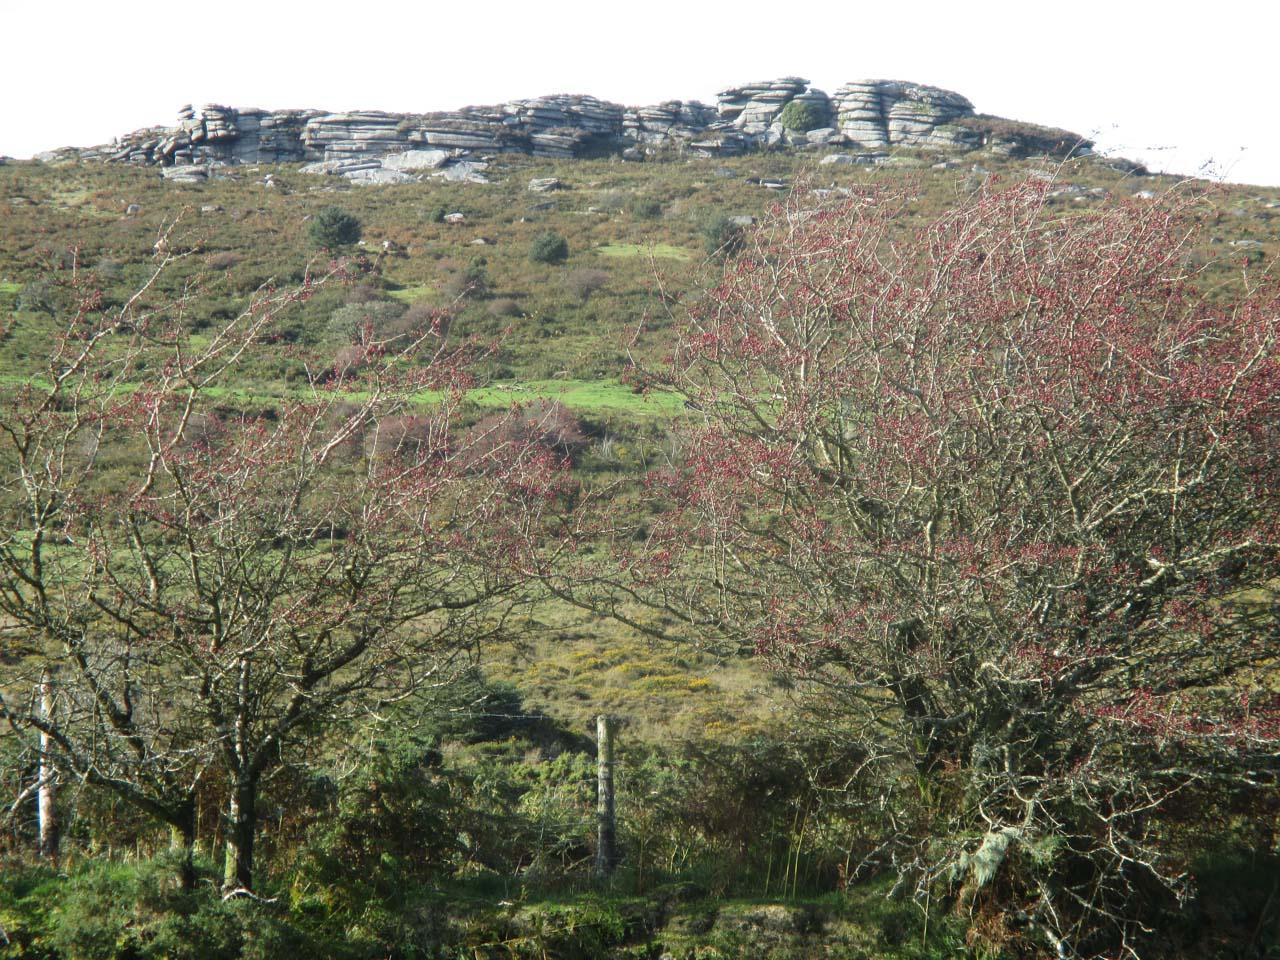 Country diary: ferns, mosses and lichens thrive in the damp